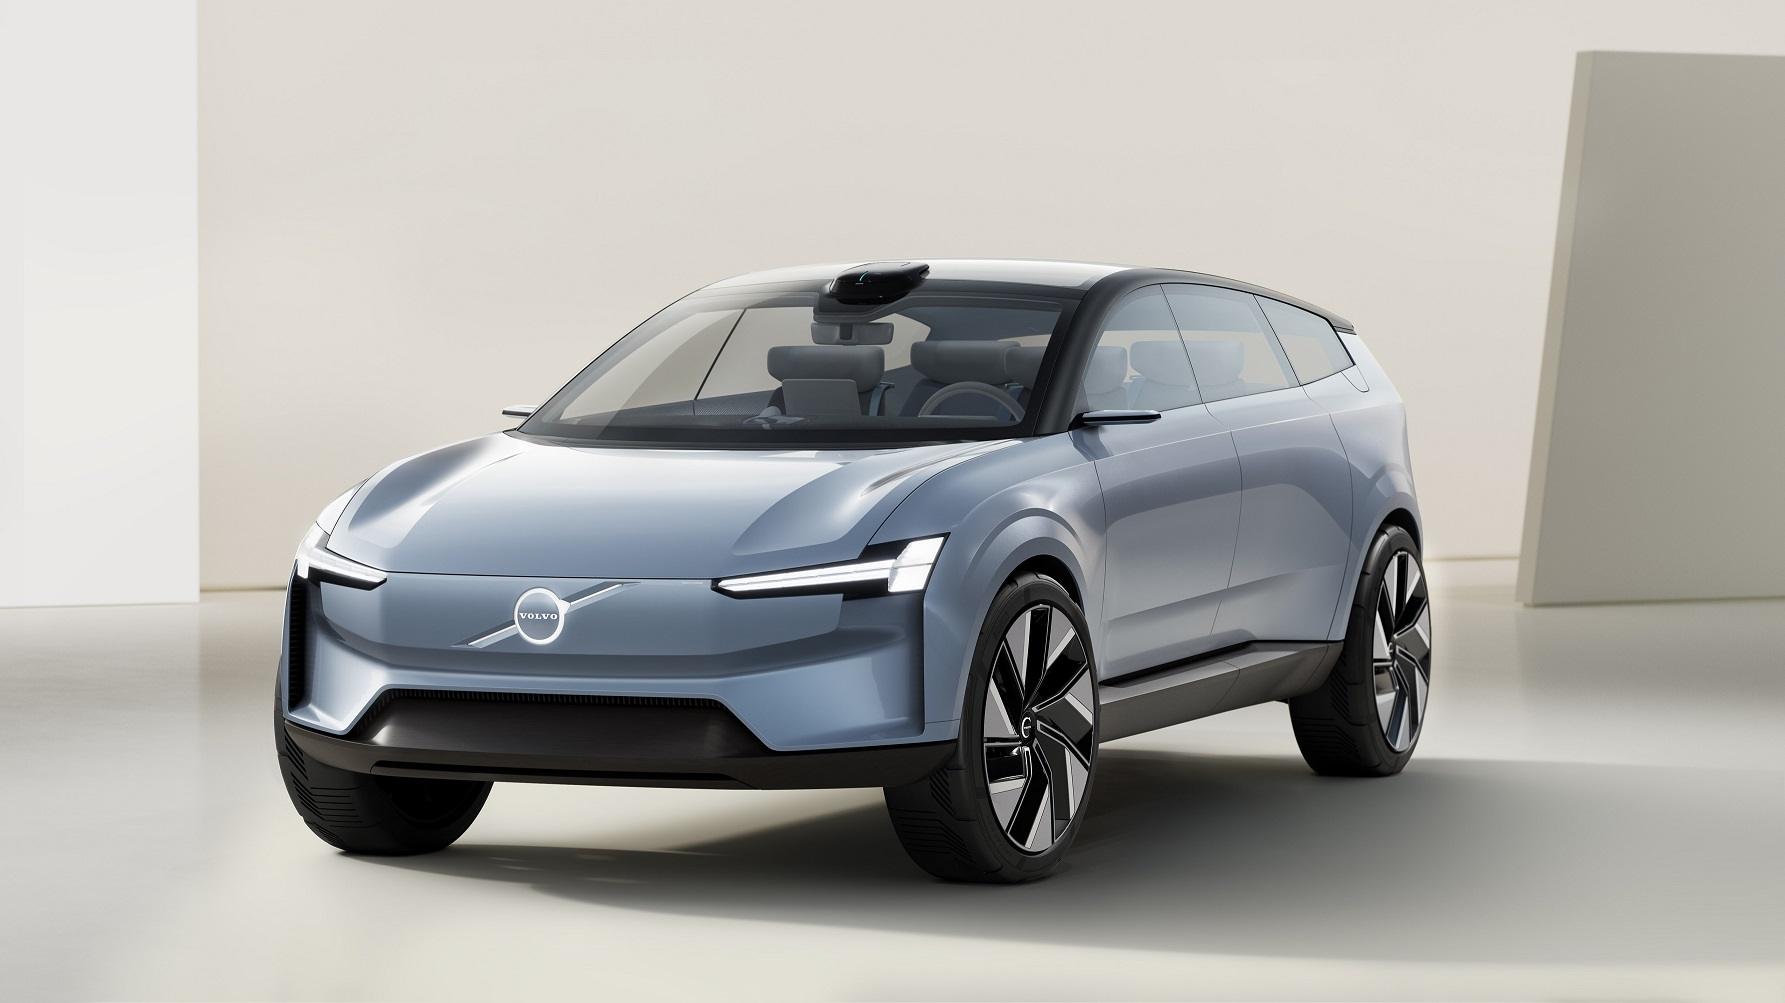 The Volvo Concept Recharge is a manifesto for Volvo Cars' pure electric future